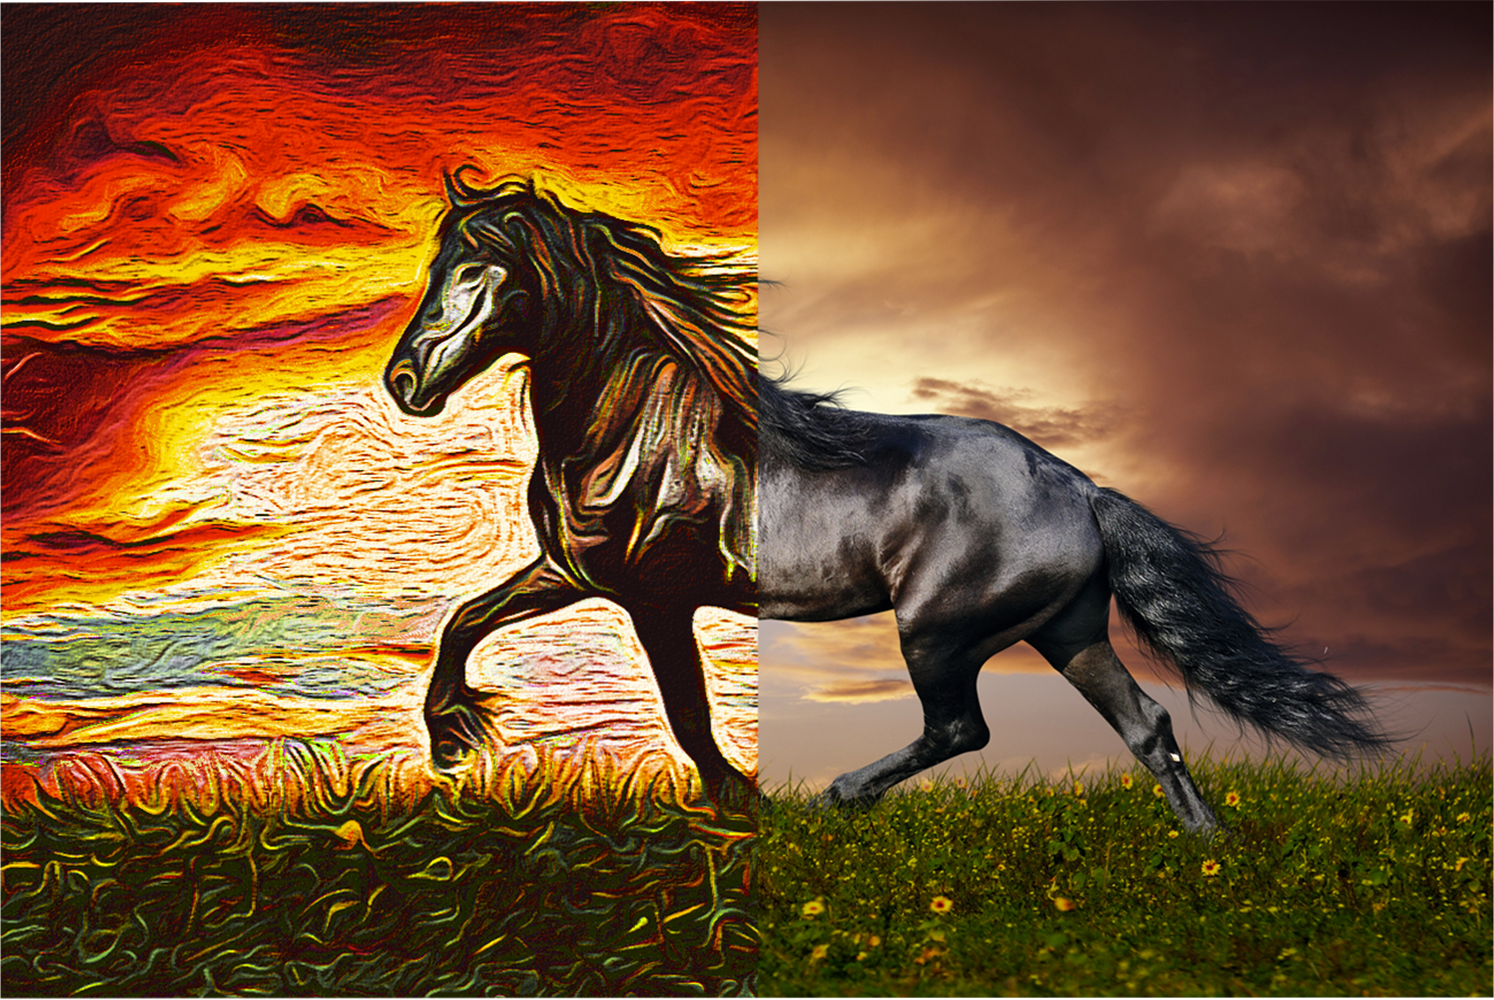 Realistic Digital Painting Effect 2.0 example image 14